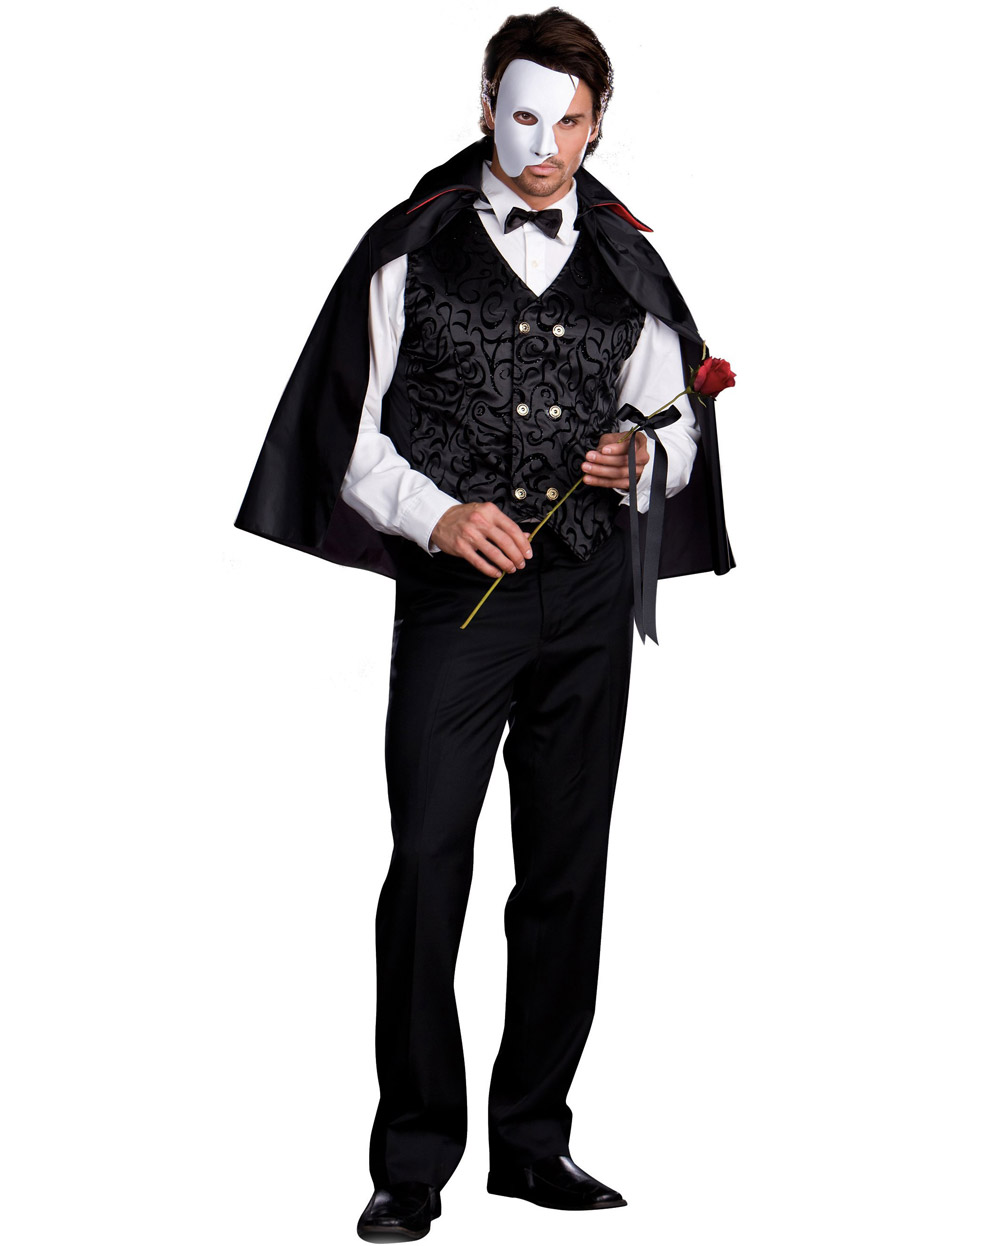 Phantom of the Opera Costumes | Parties Costume